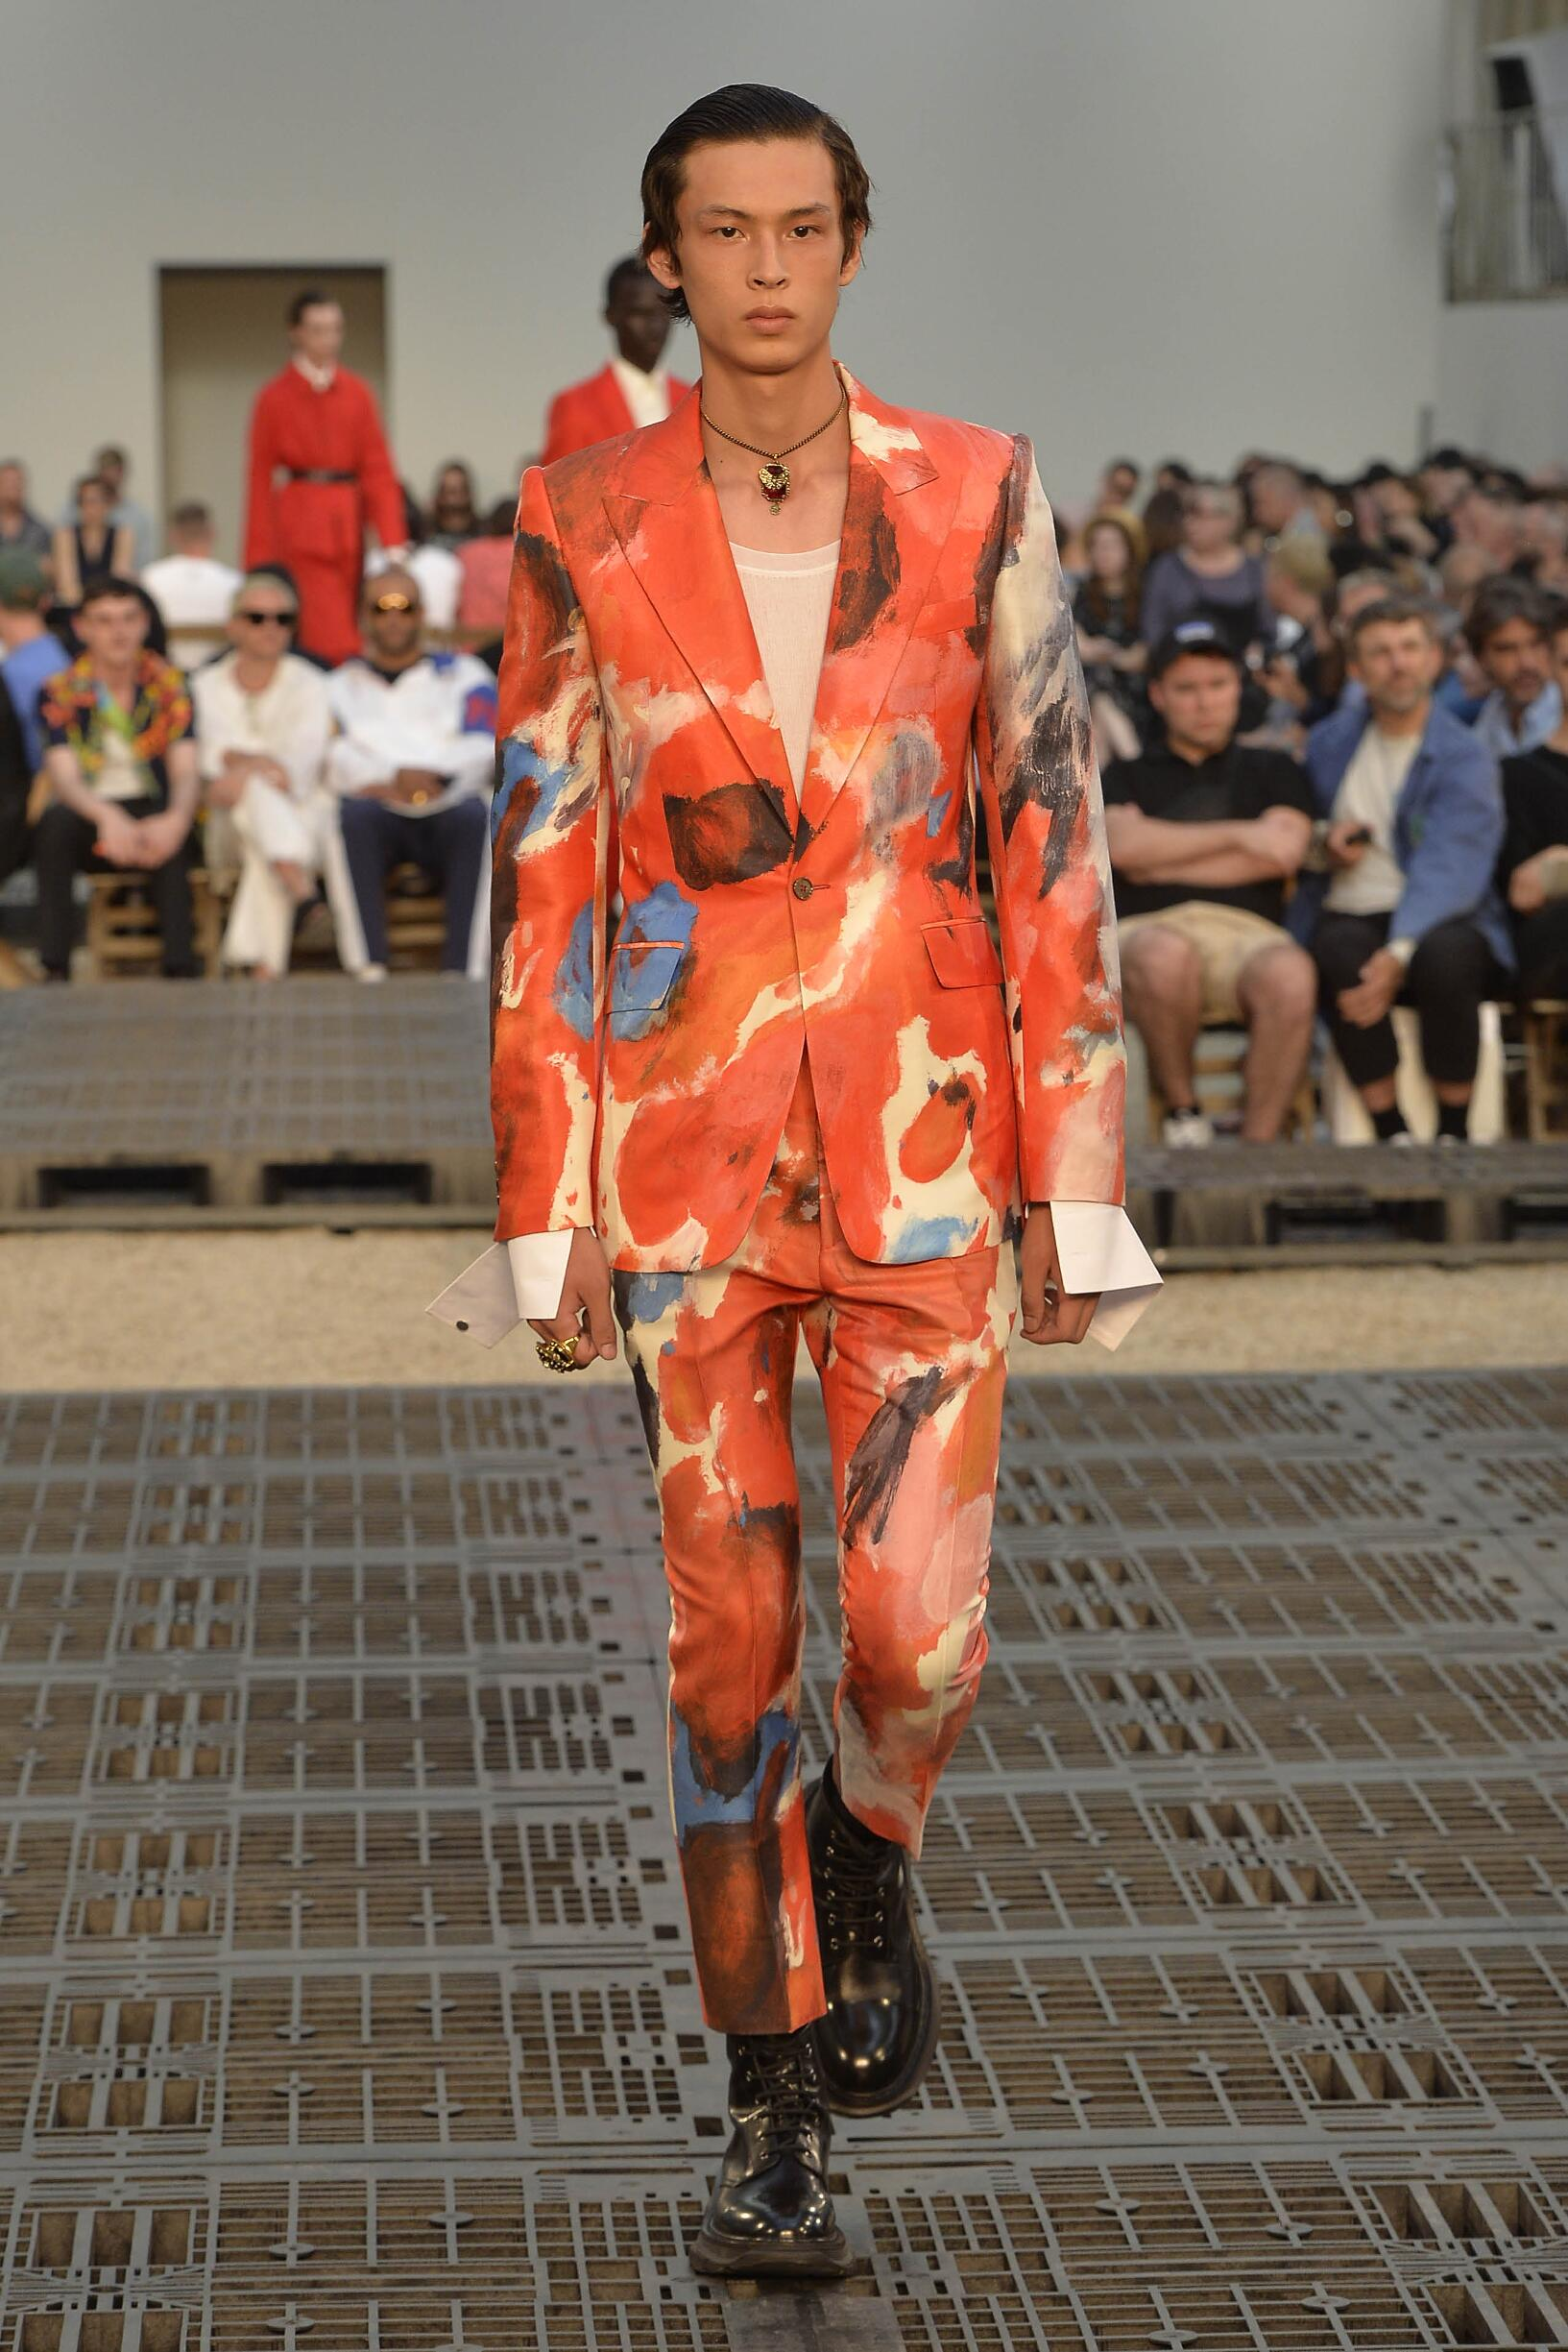 Catwalk Alexander McQueen Man Fashion Show Summer 2019